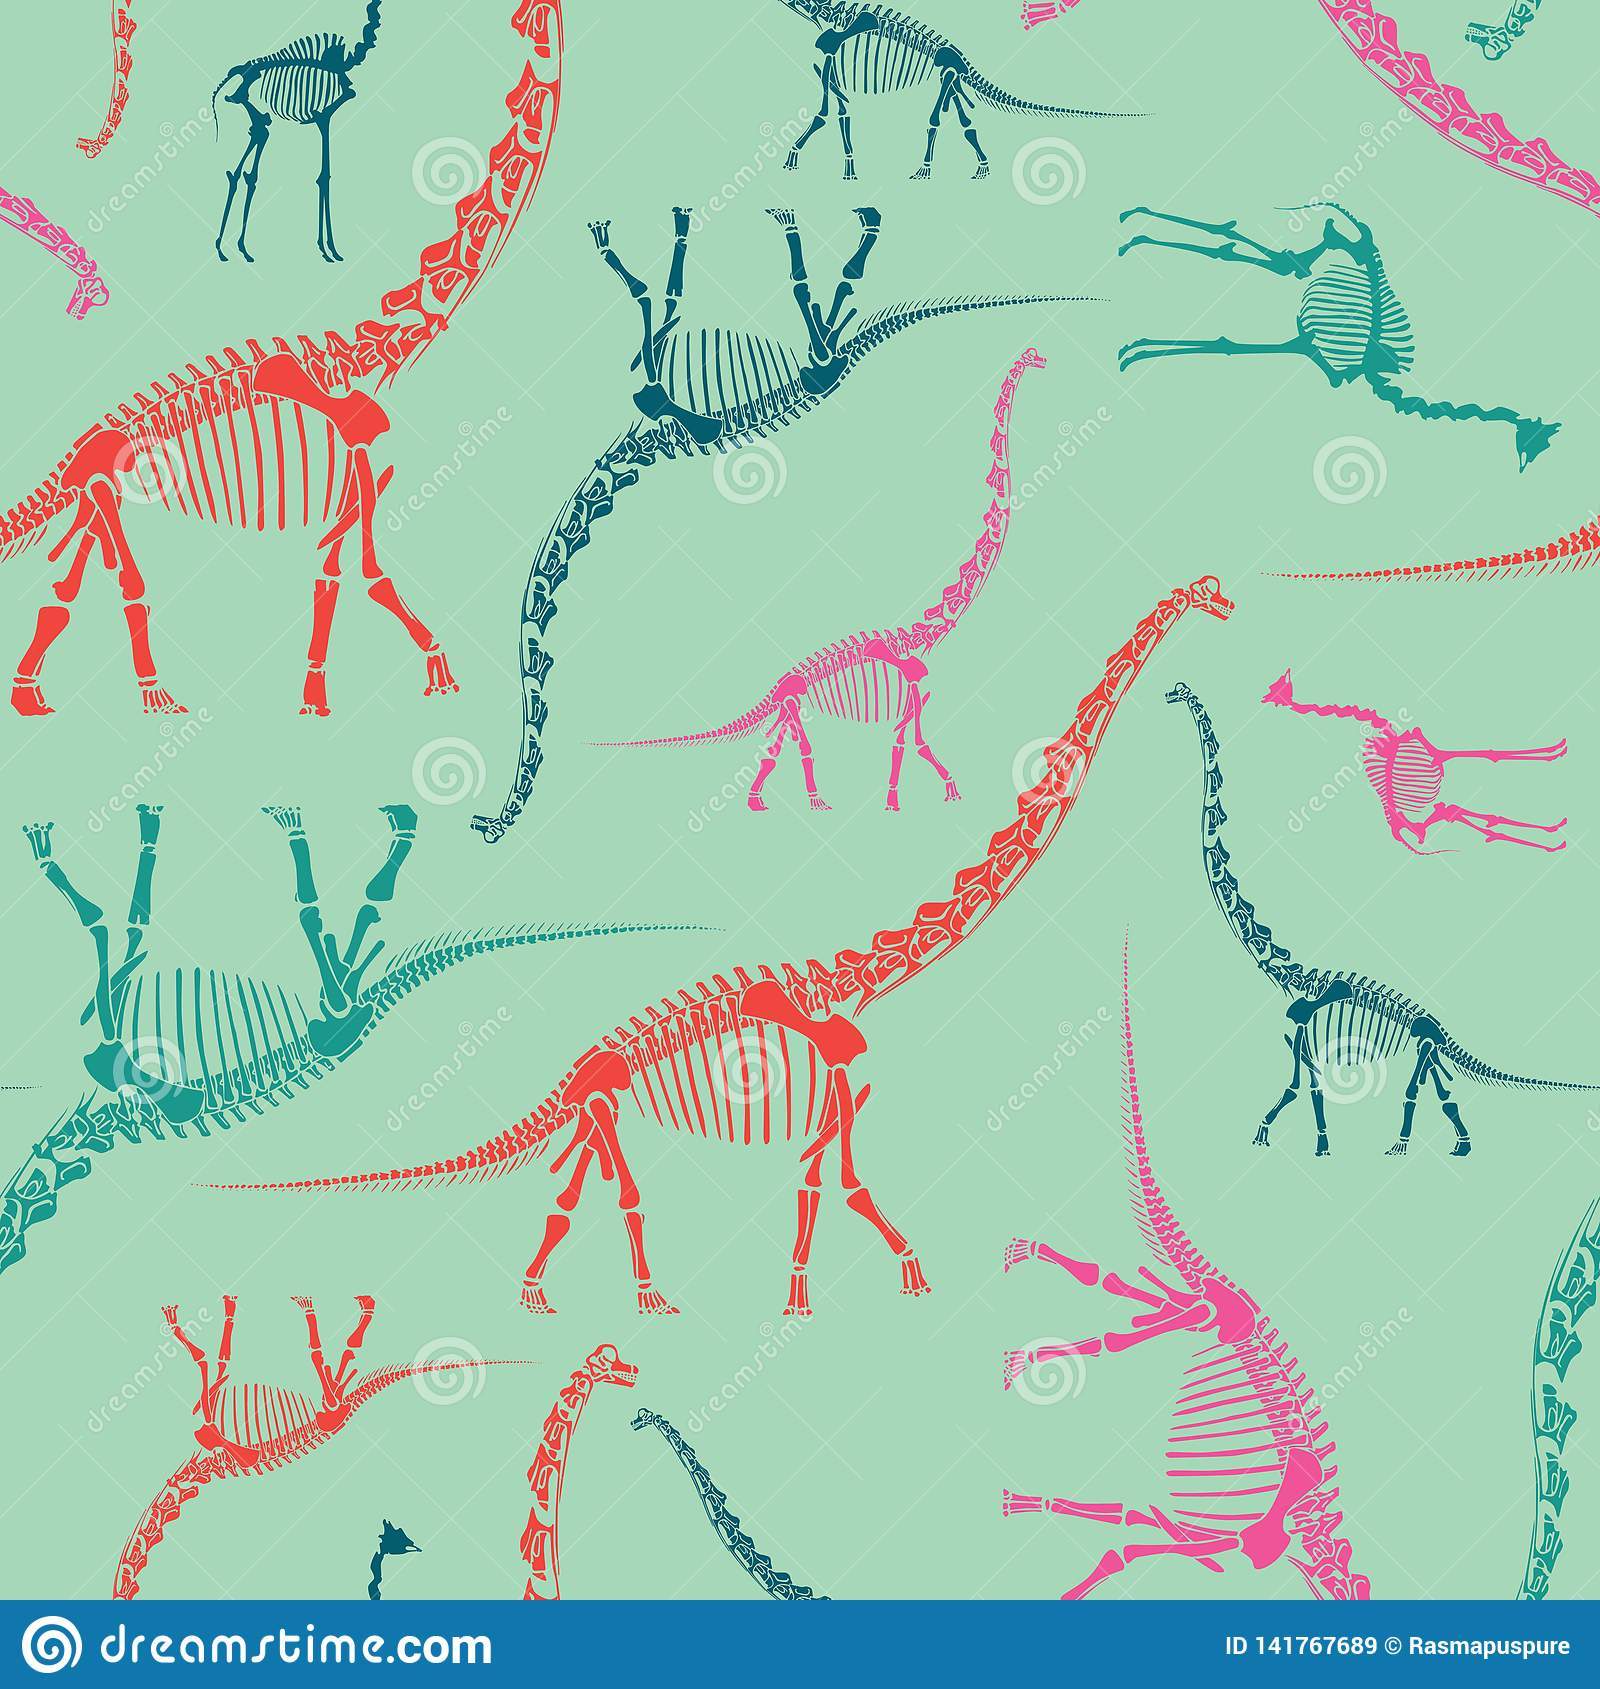 Dinosaur Skeleton Seamless Pattern on Mint. Bright and Colorful Wallpaper